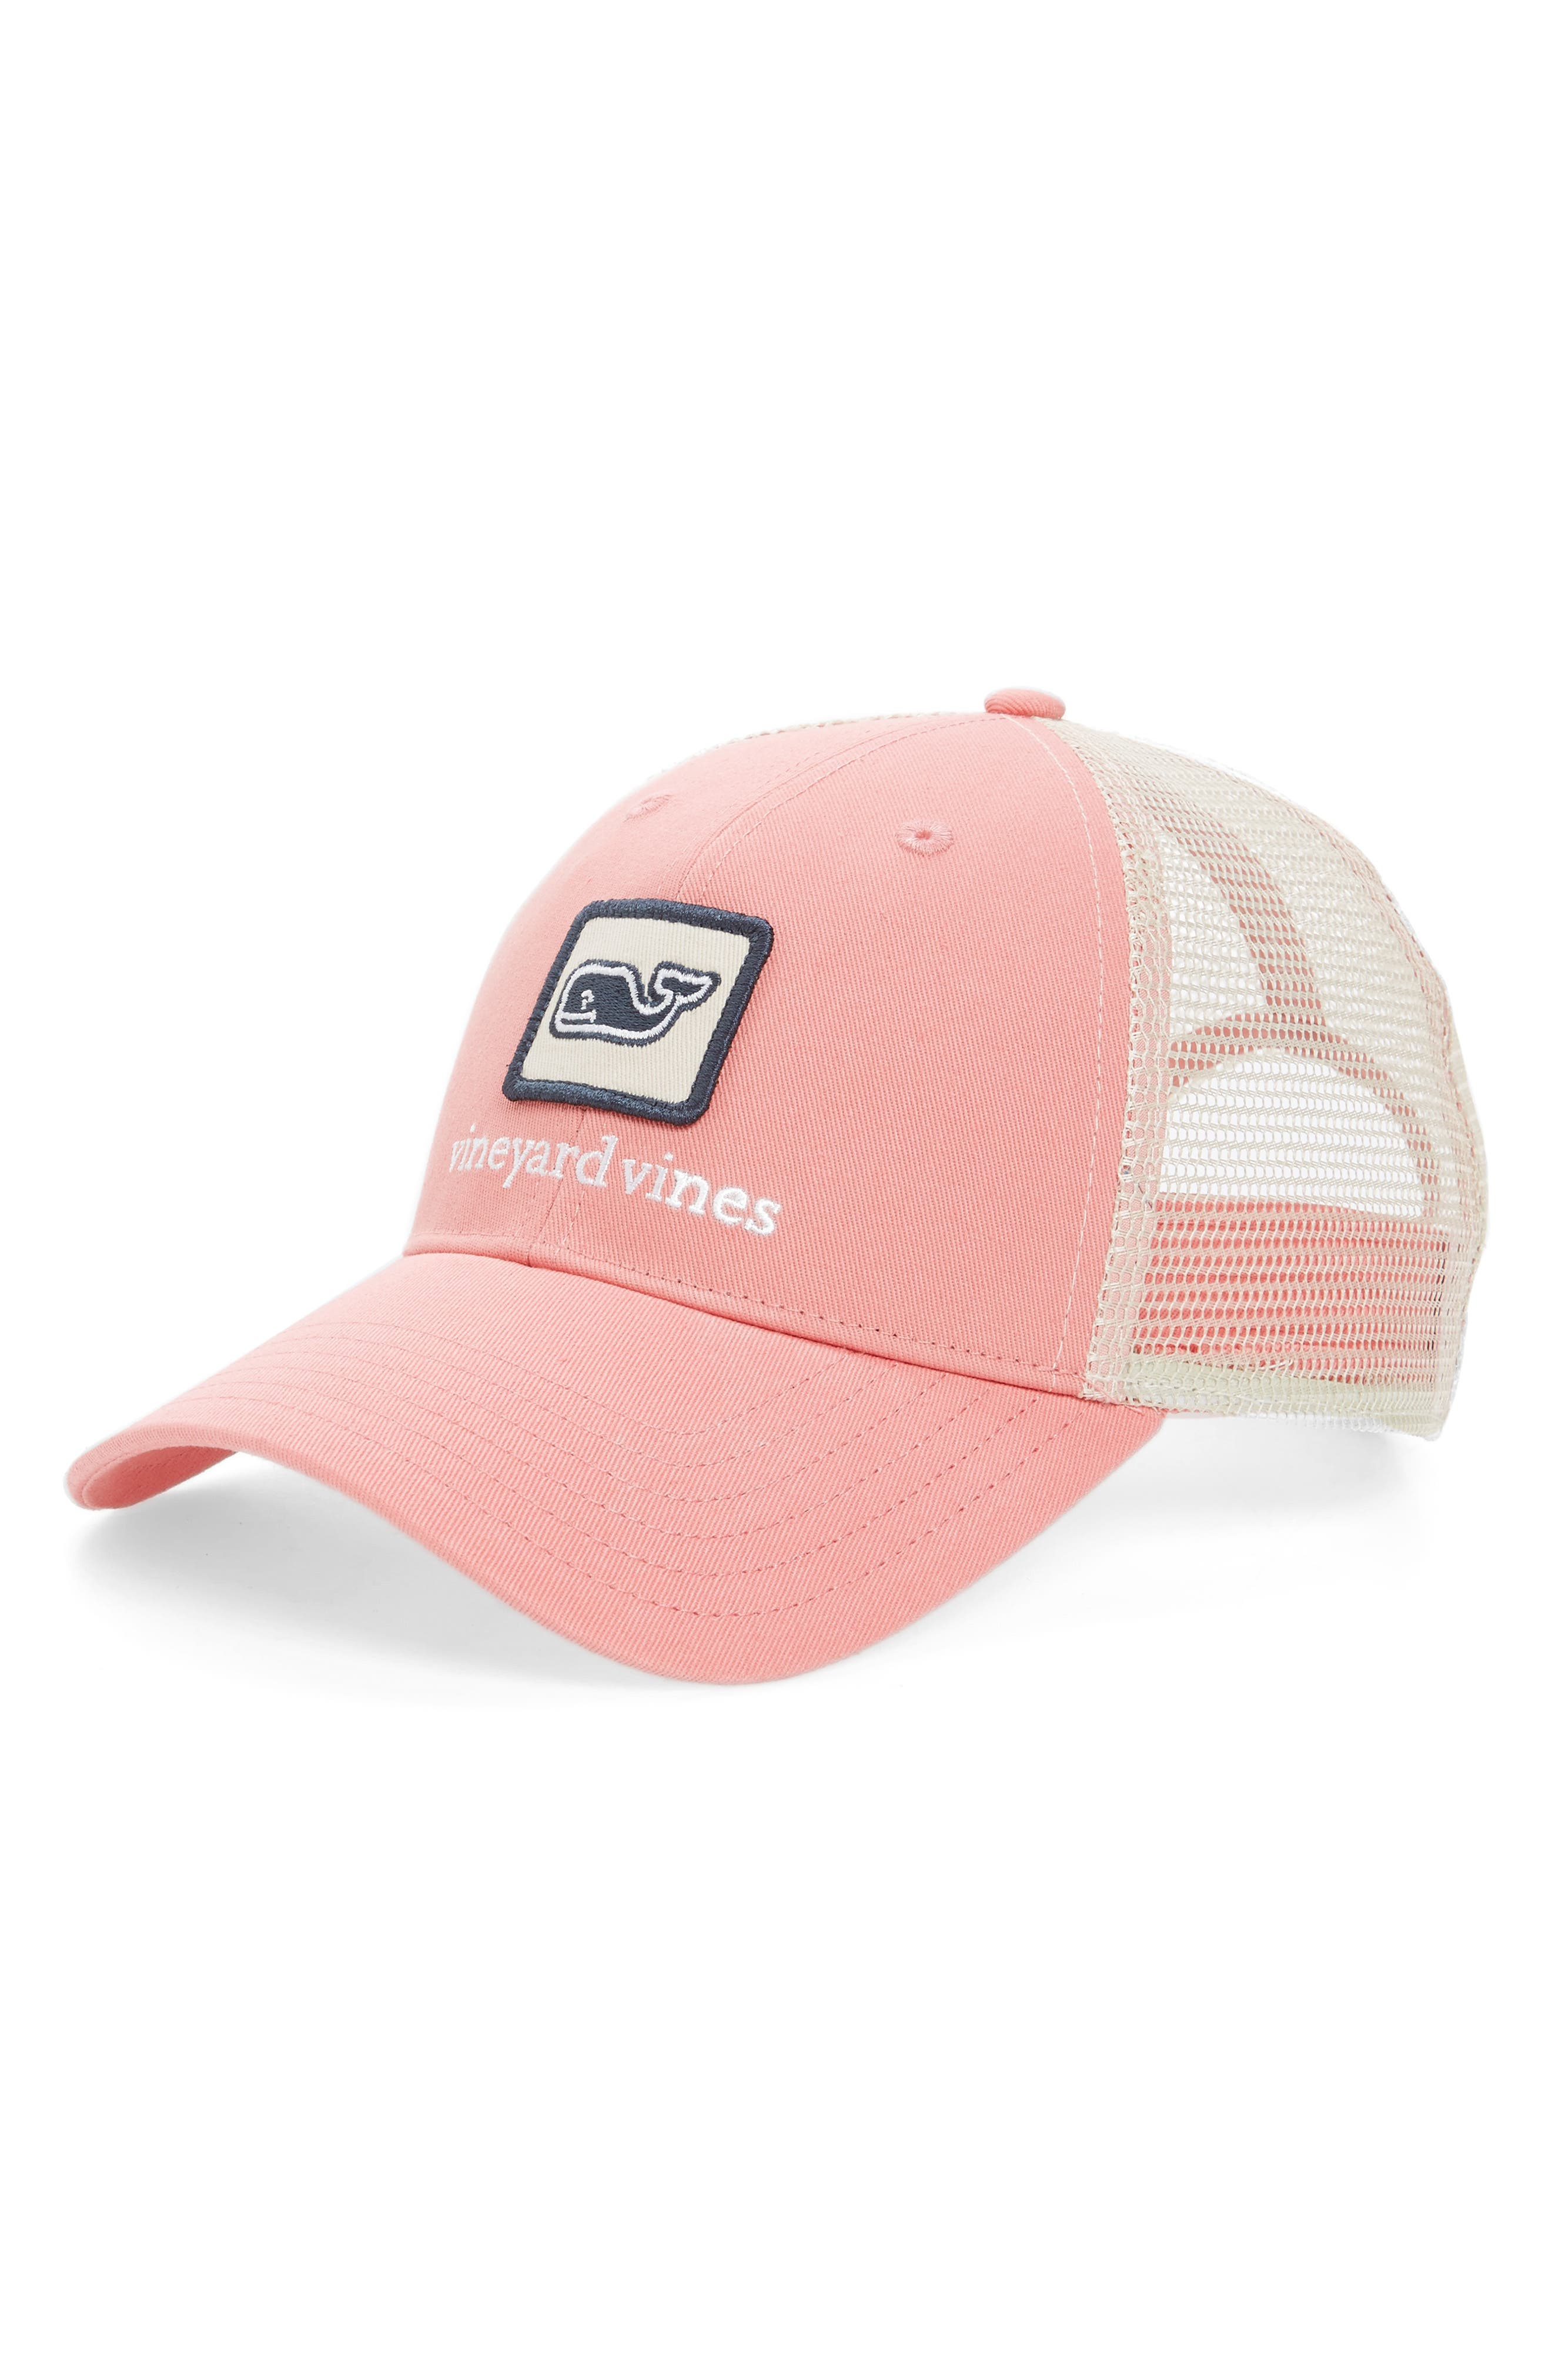 vineyard vines Whale Patch Trucker Hat